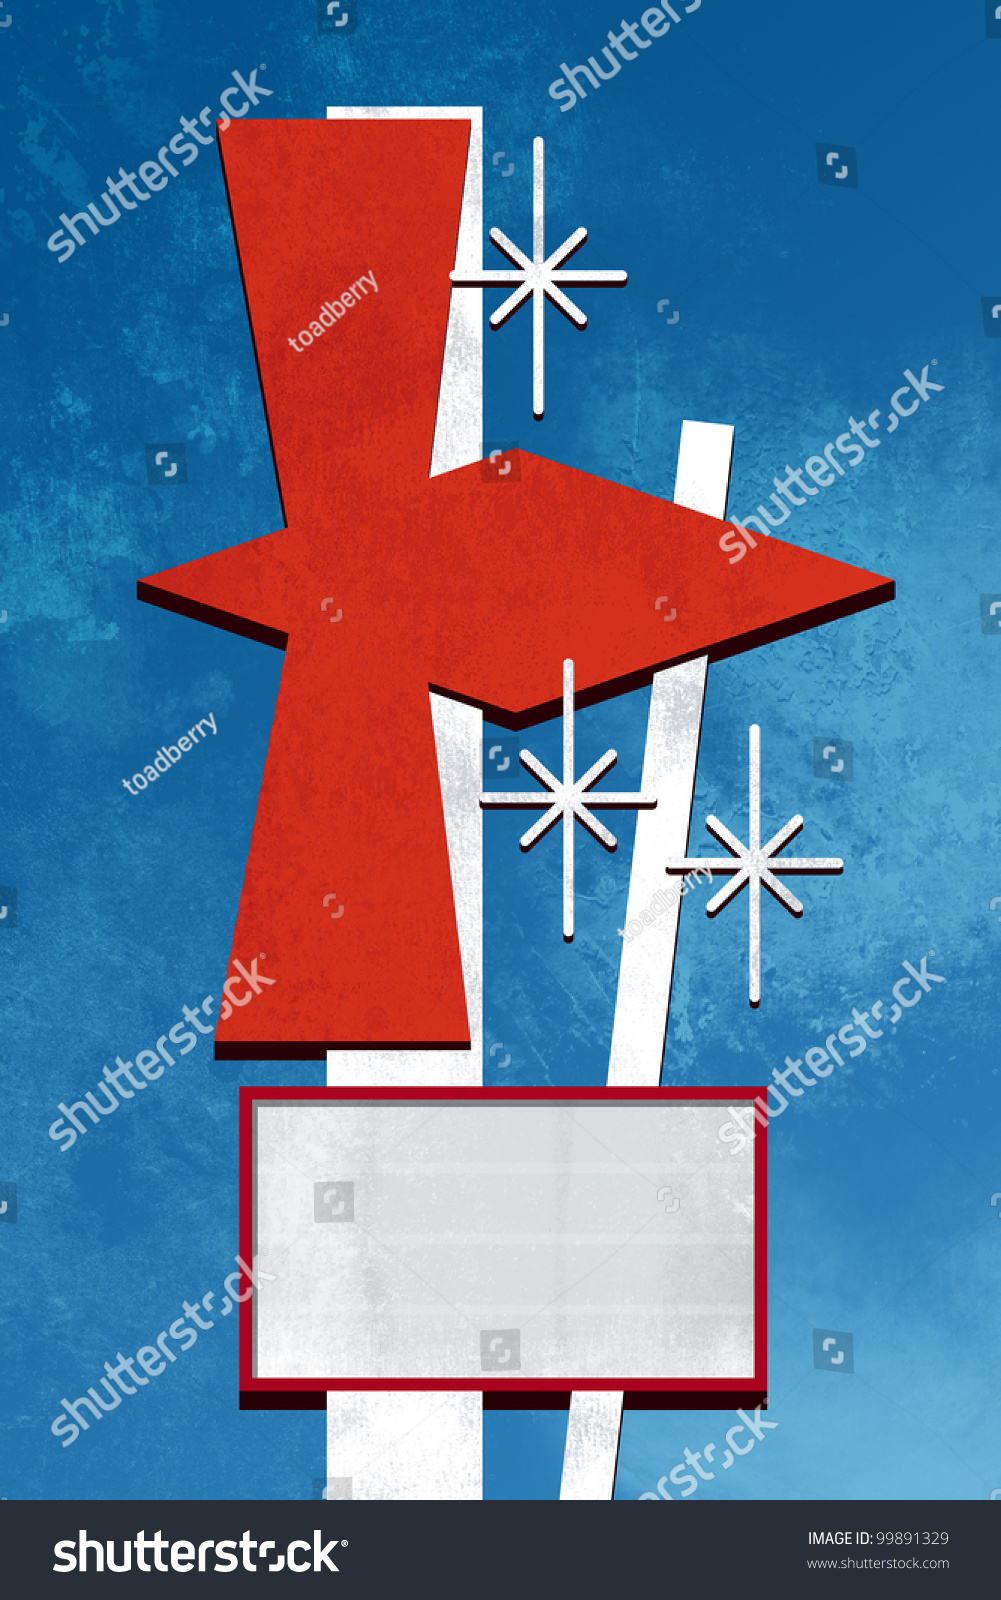 Retro Sign Design Stock Photo 99891329 : Shutterstock